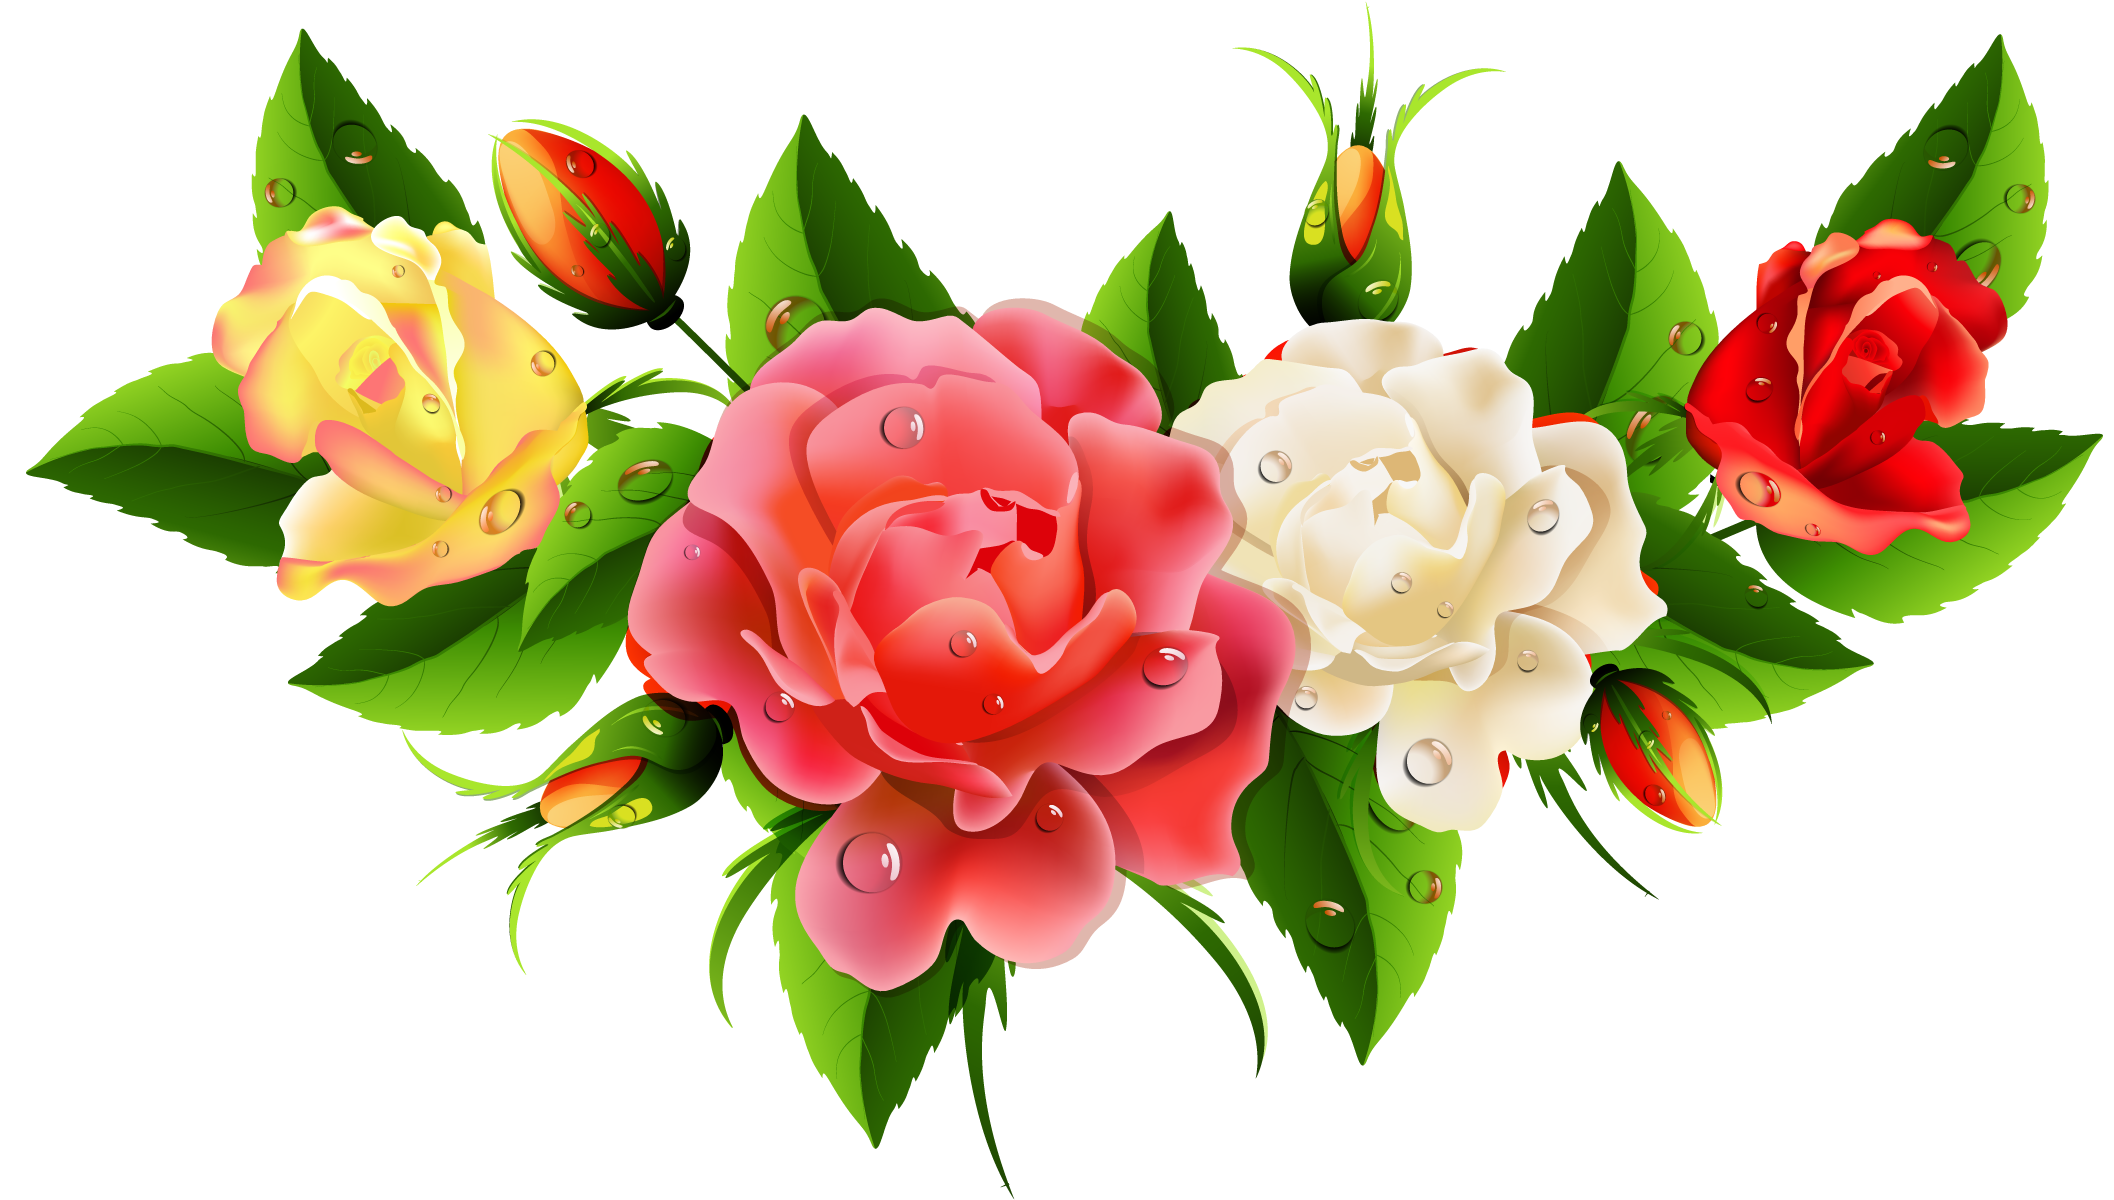 July flower clipart image free download July clipart july flower, July july flower Transparent FREE for ... image free download